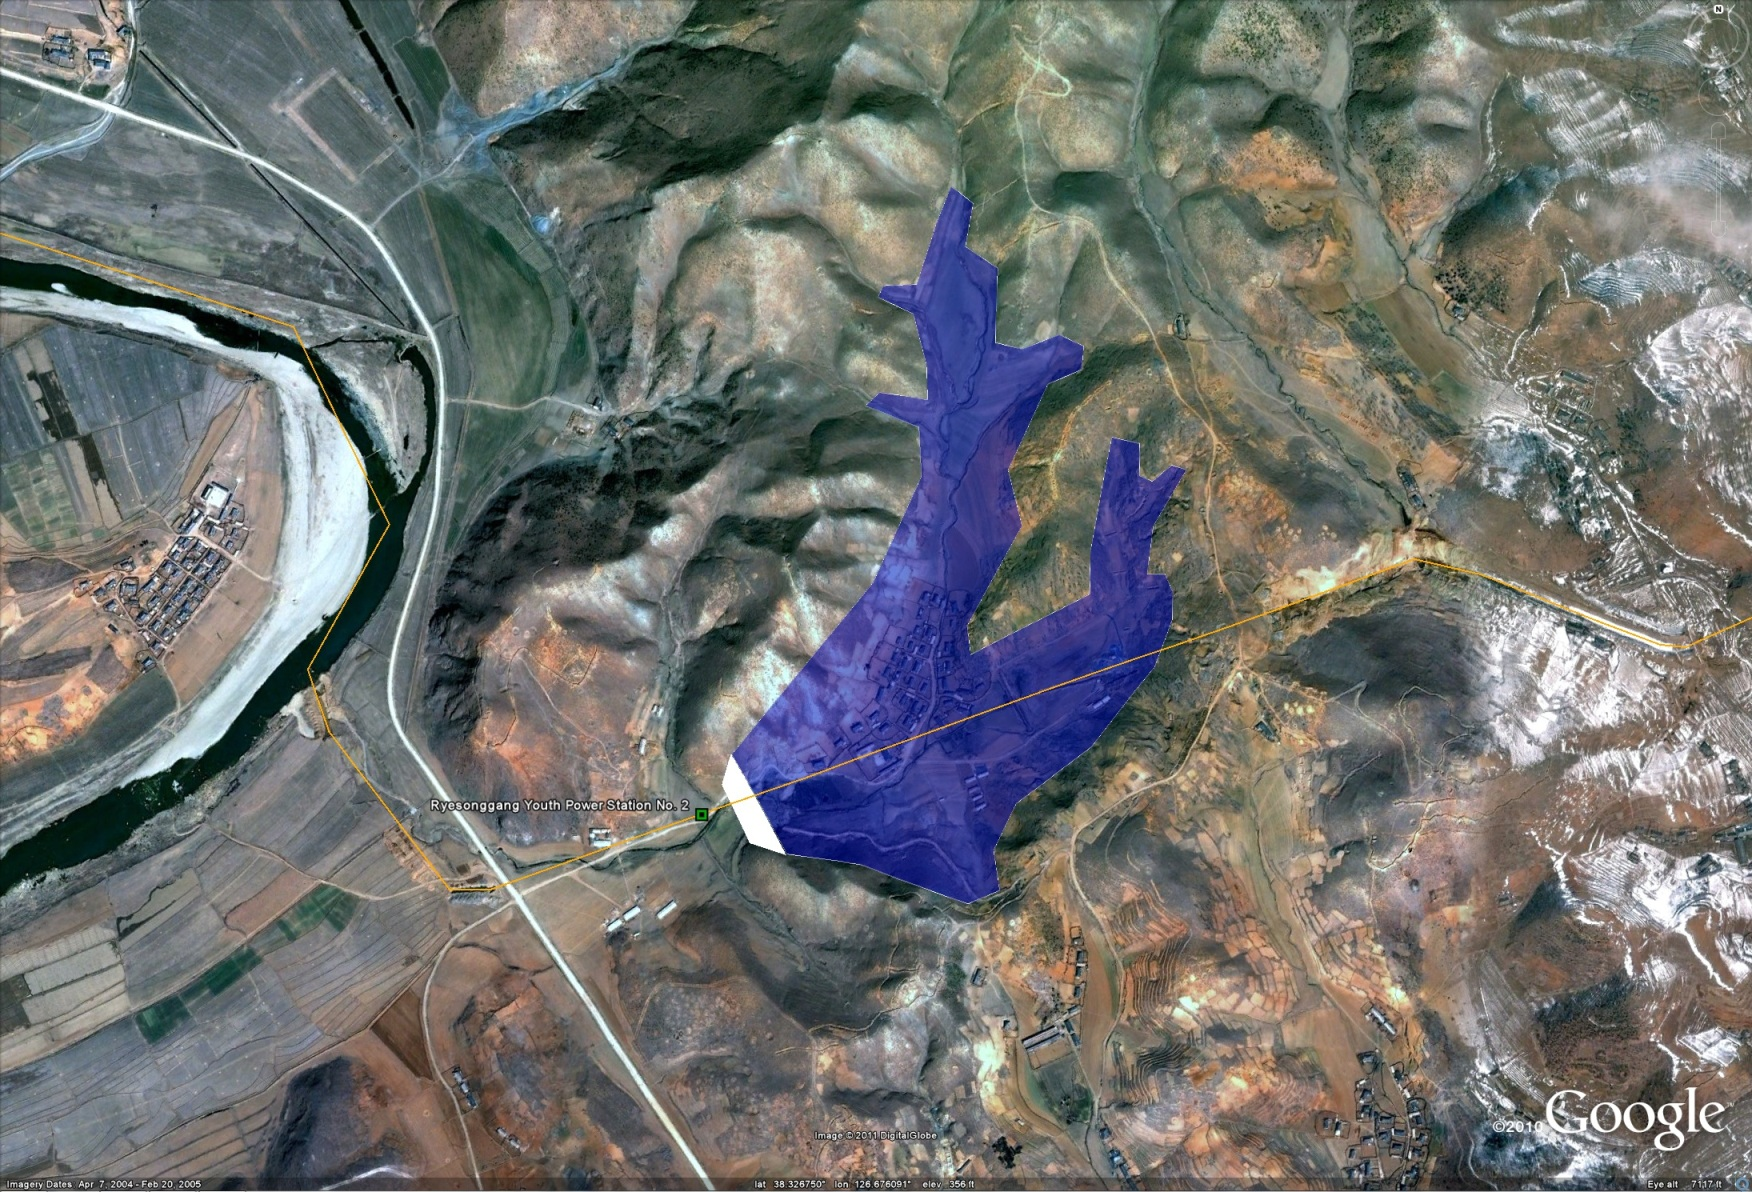 i previously wrote about the ryesonggang power station no 2 here since a newer satellite image has come to my attention that shows the project completed